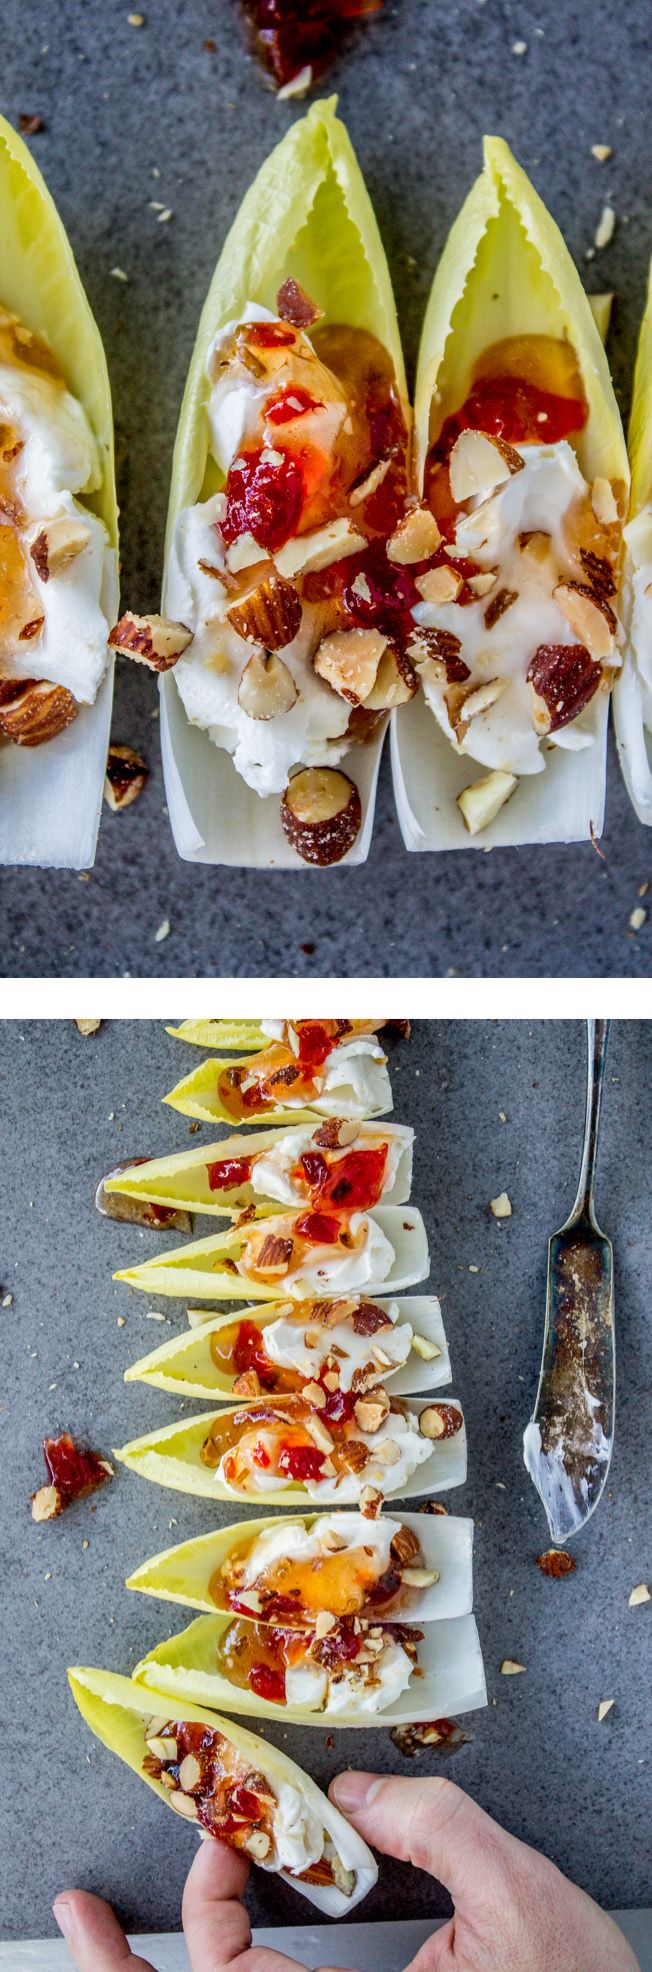 The easiest healthy appetizer! An endive leaf with cream cheese, red pepper jelly, and smokey almonds. Perfect to combat all the carb-heavy food this season. From the Food Charlatan.